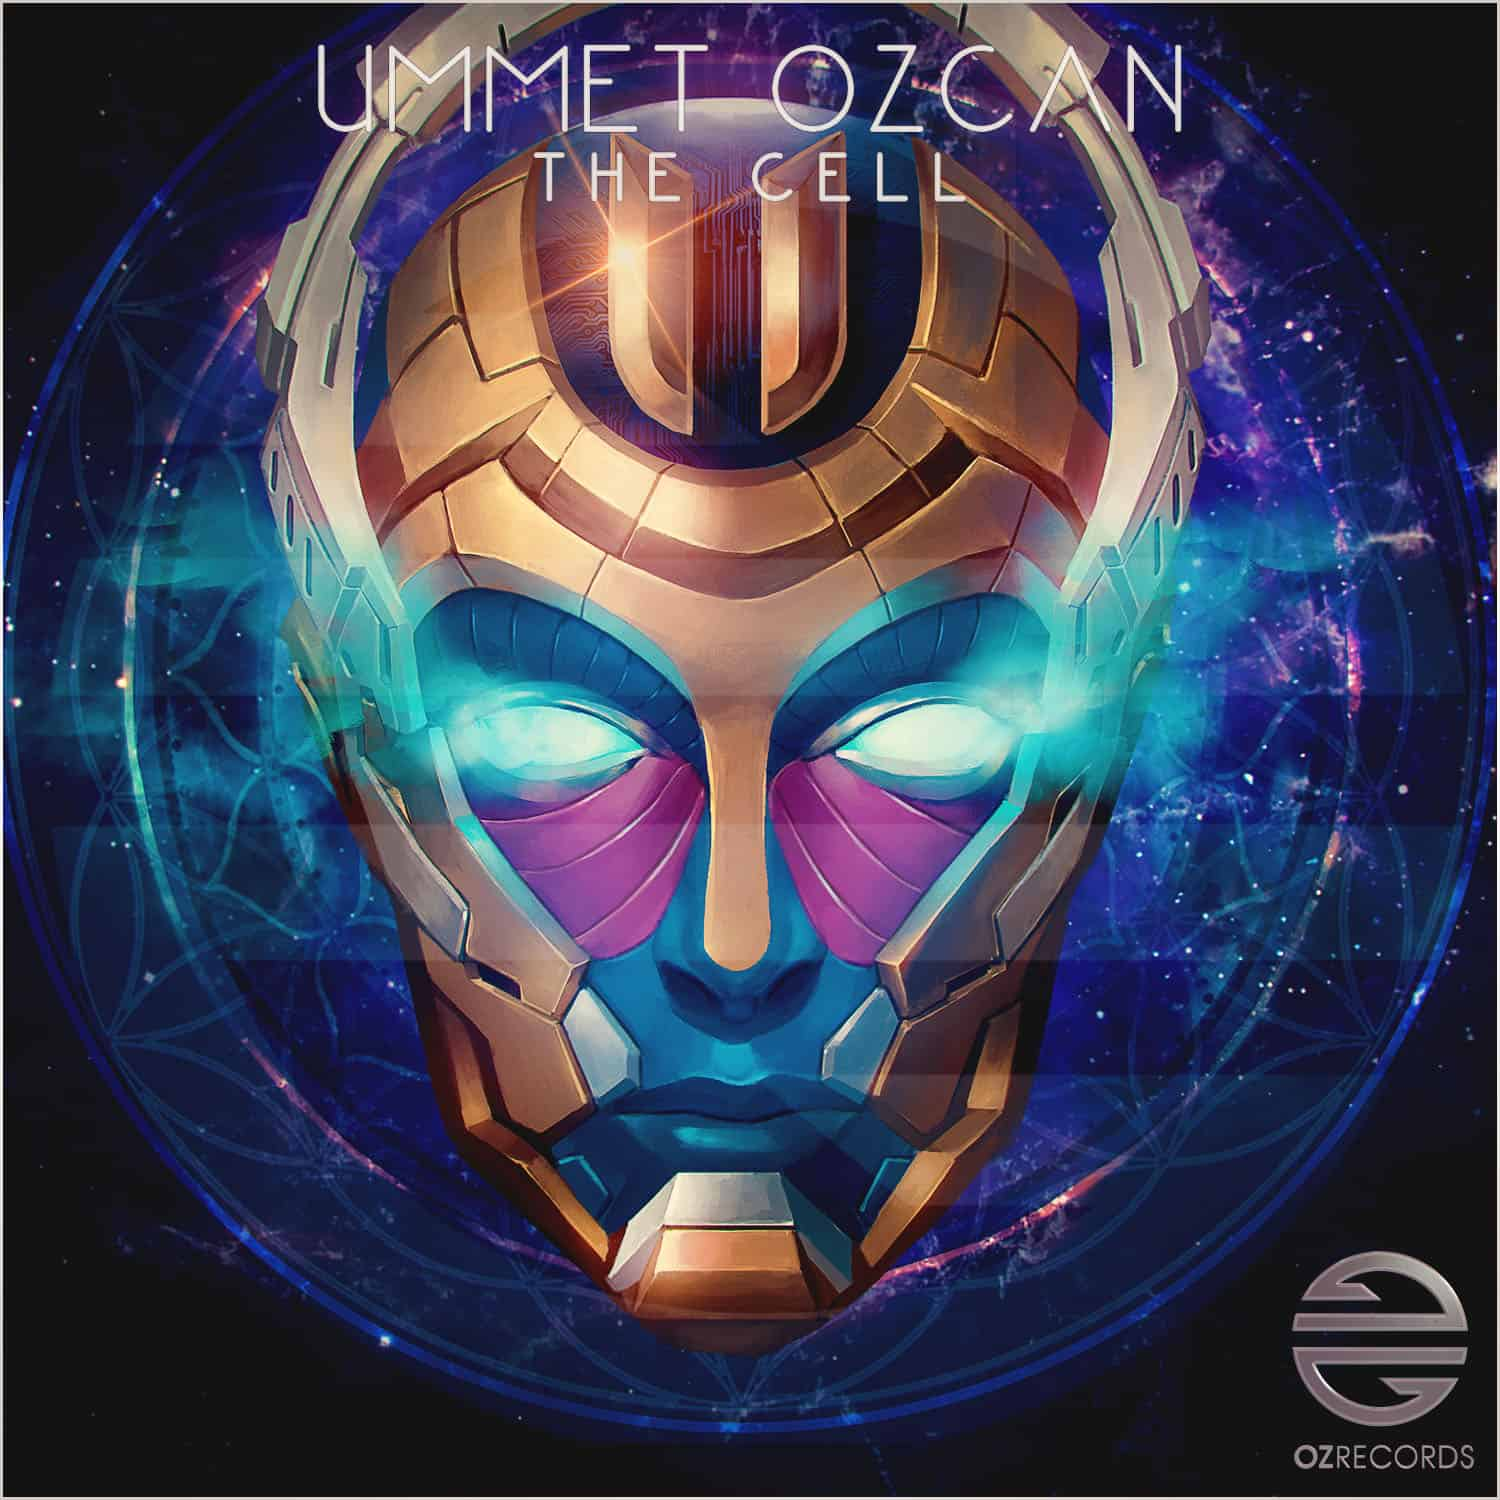 Ummet Ozcan drops 'The Cell' on his very own OZ Records